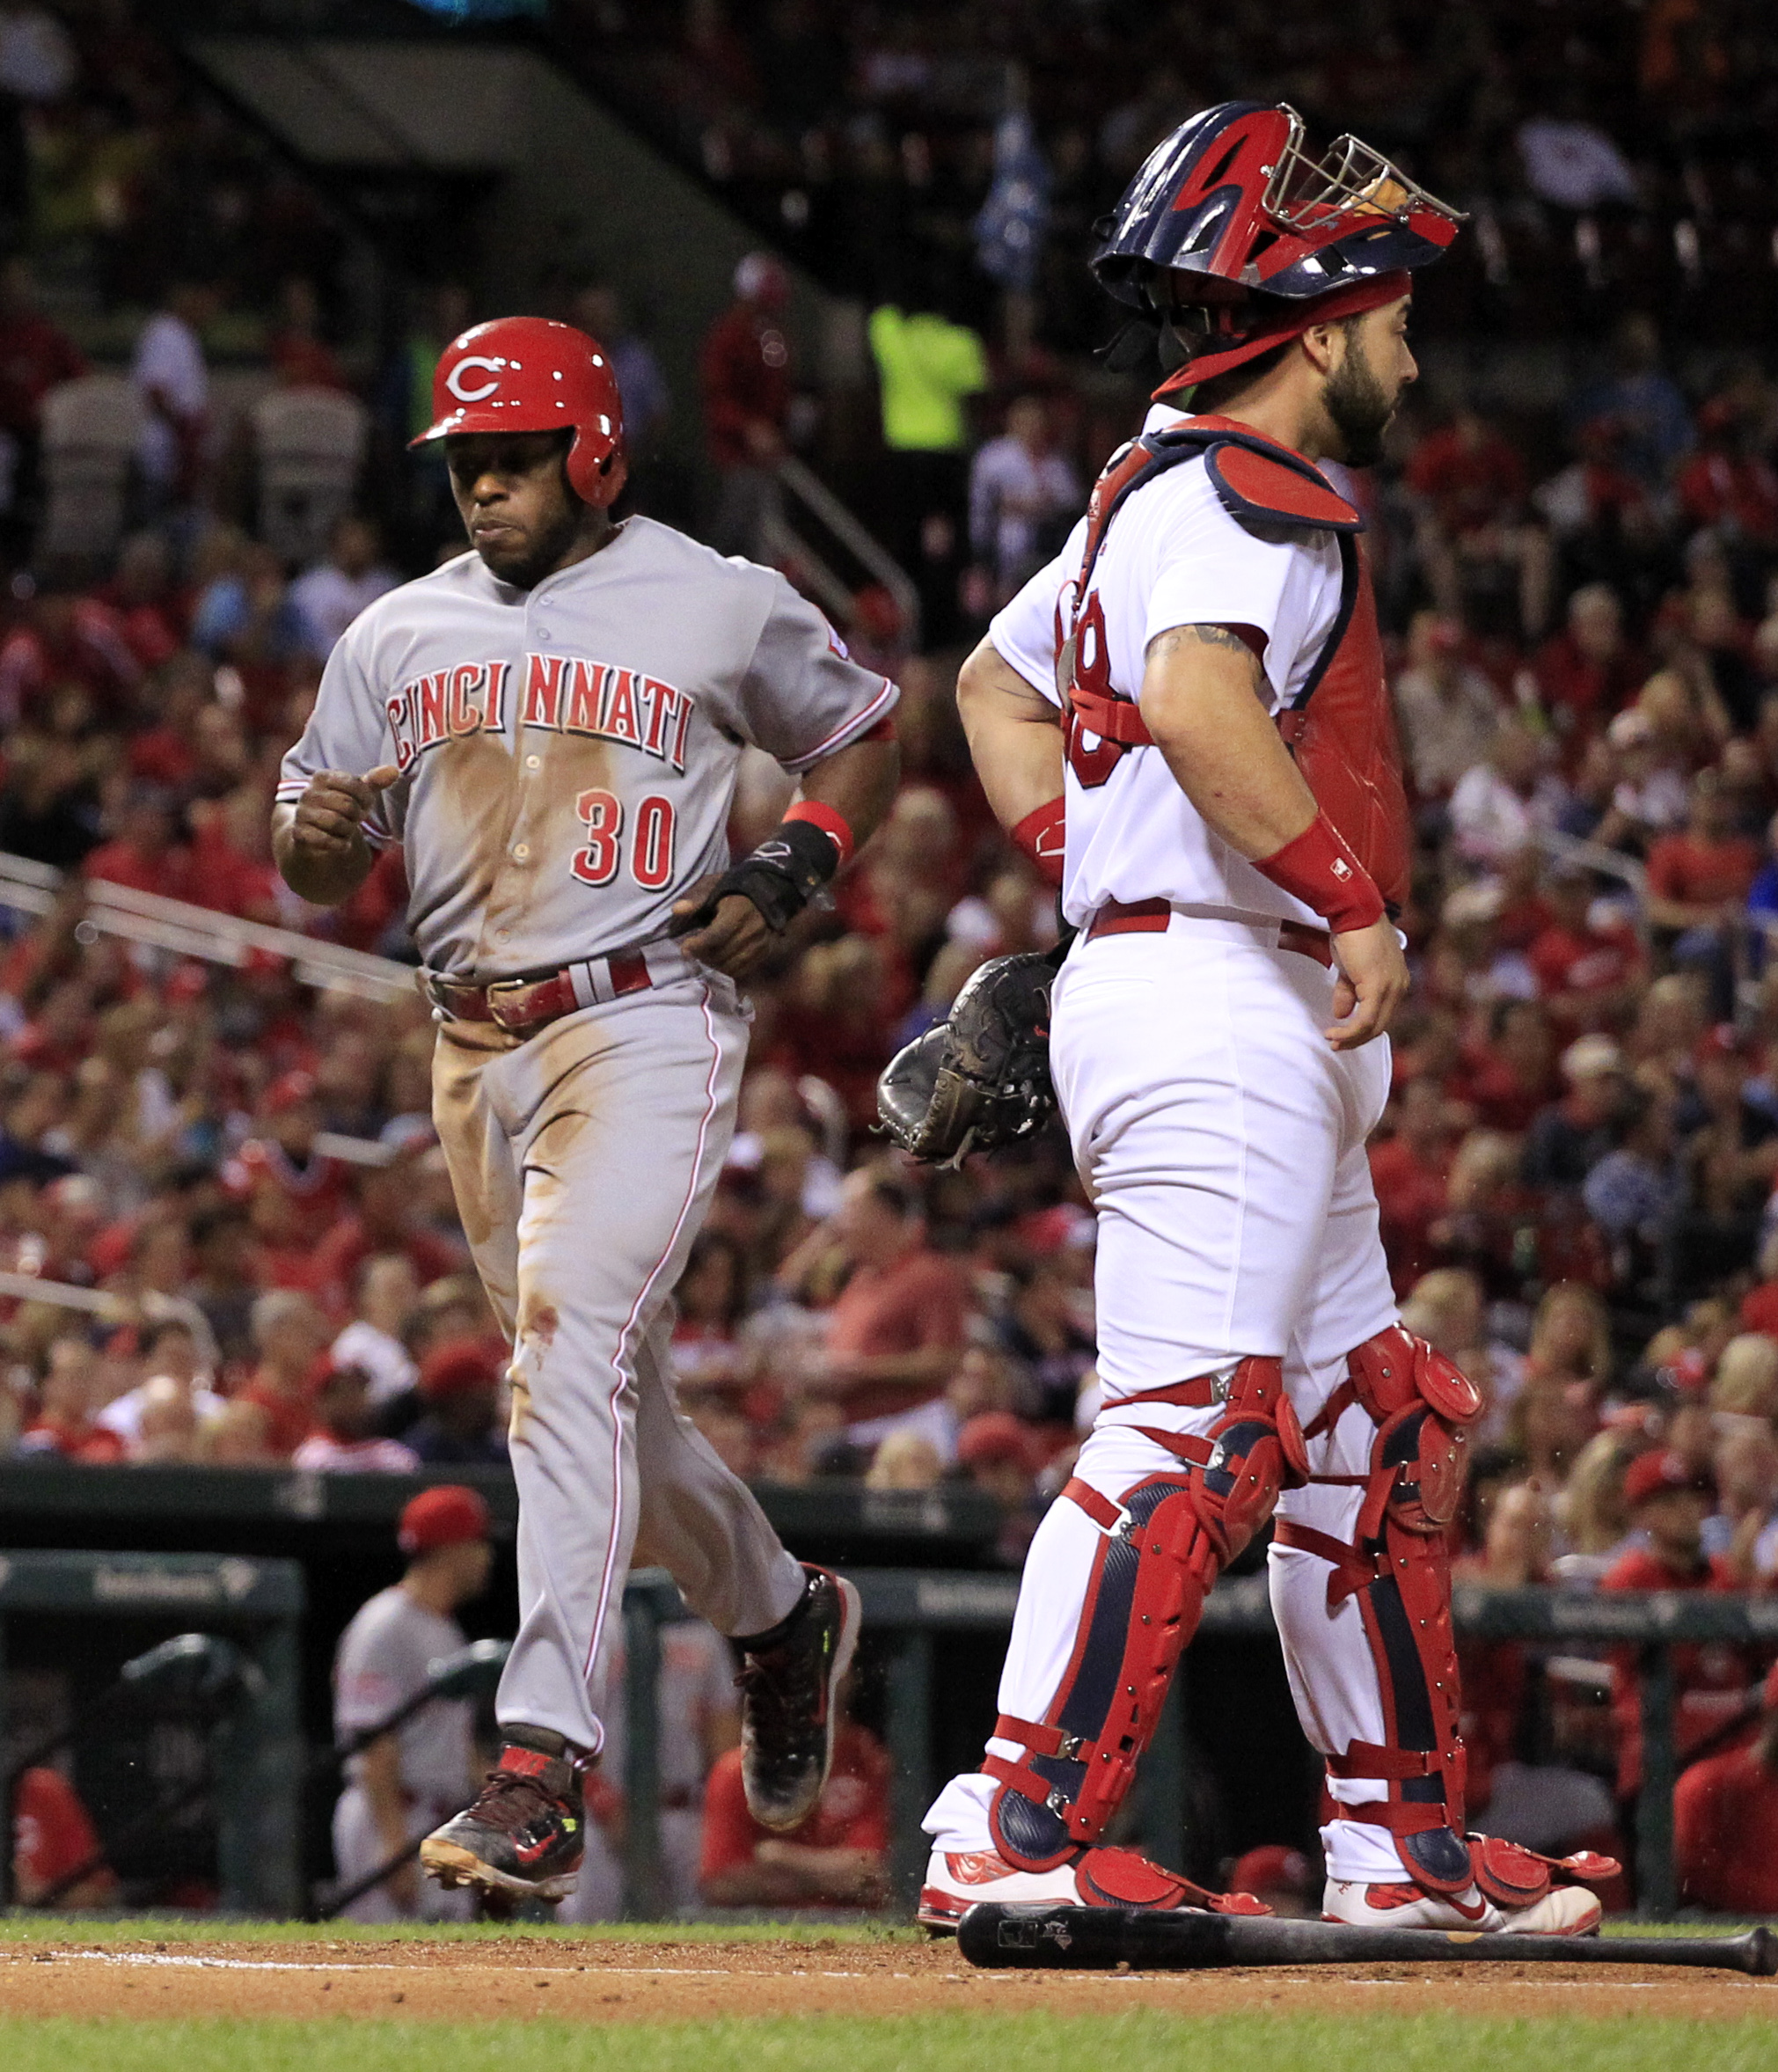 Cincinnati Reds' Jason Bourgeois, left, scores past St. Louis Cardinals catcher Tony Cruz, right, on a single by Brandon Phillips during the first inning of a baseball game against the St. Louis Cardinals on Monday, Sept. 21, 2015, in St. Louis. (AP Photo